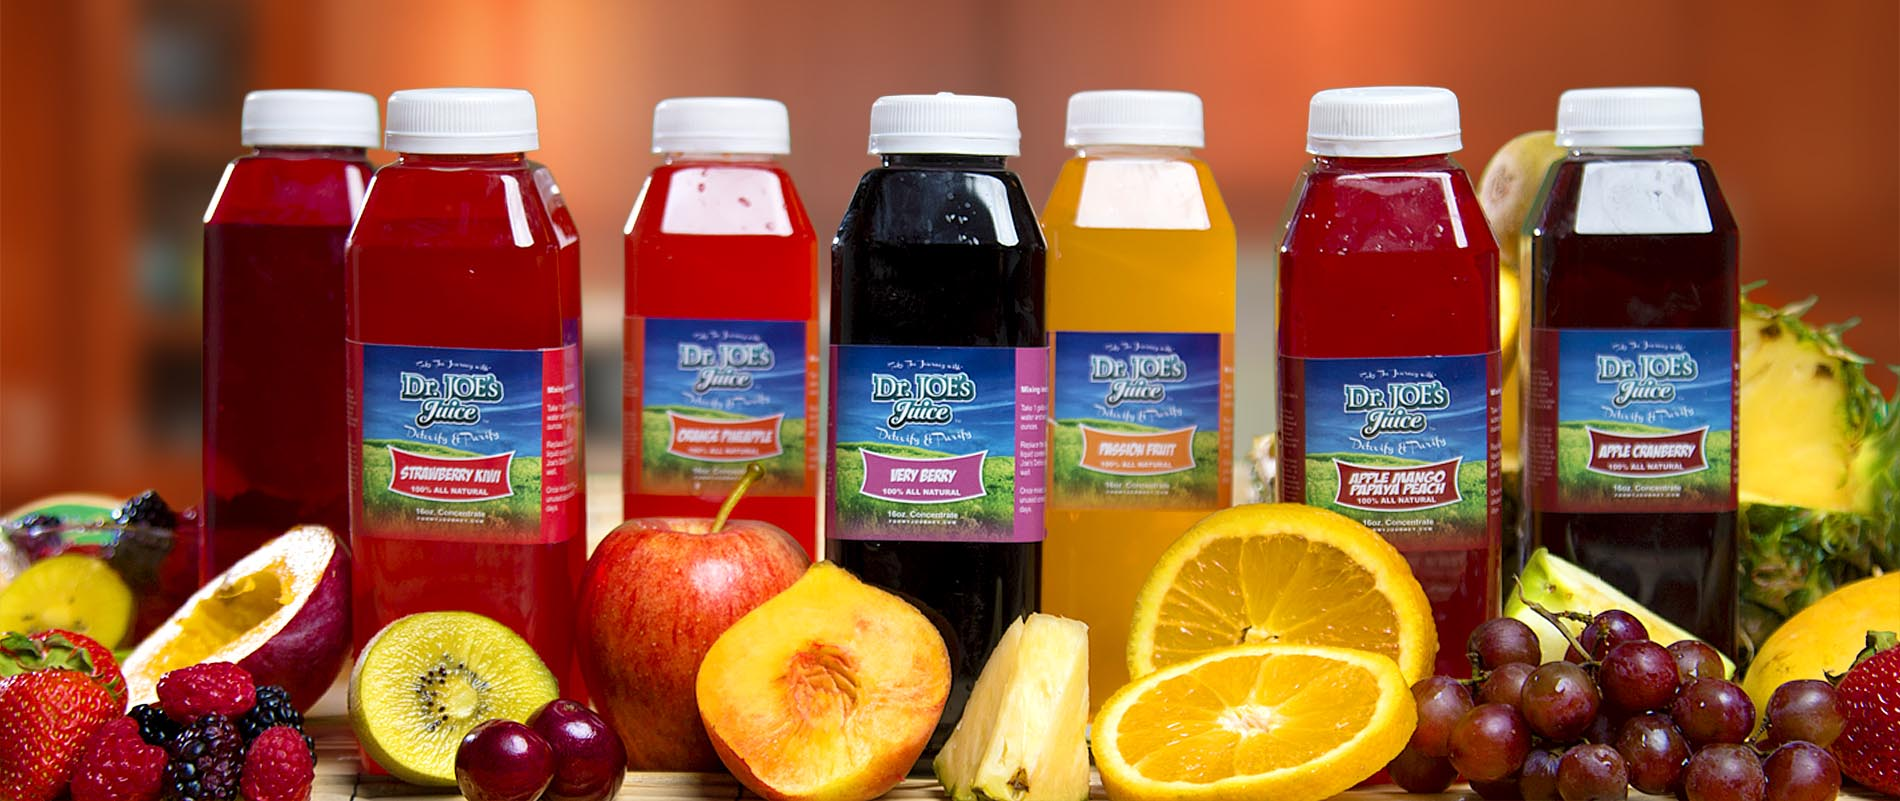 Dr Joe's Detox Juice Products